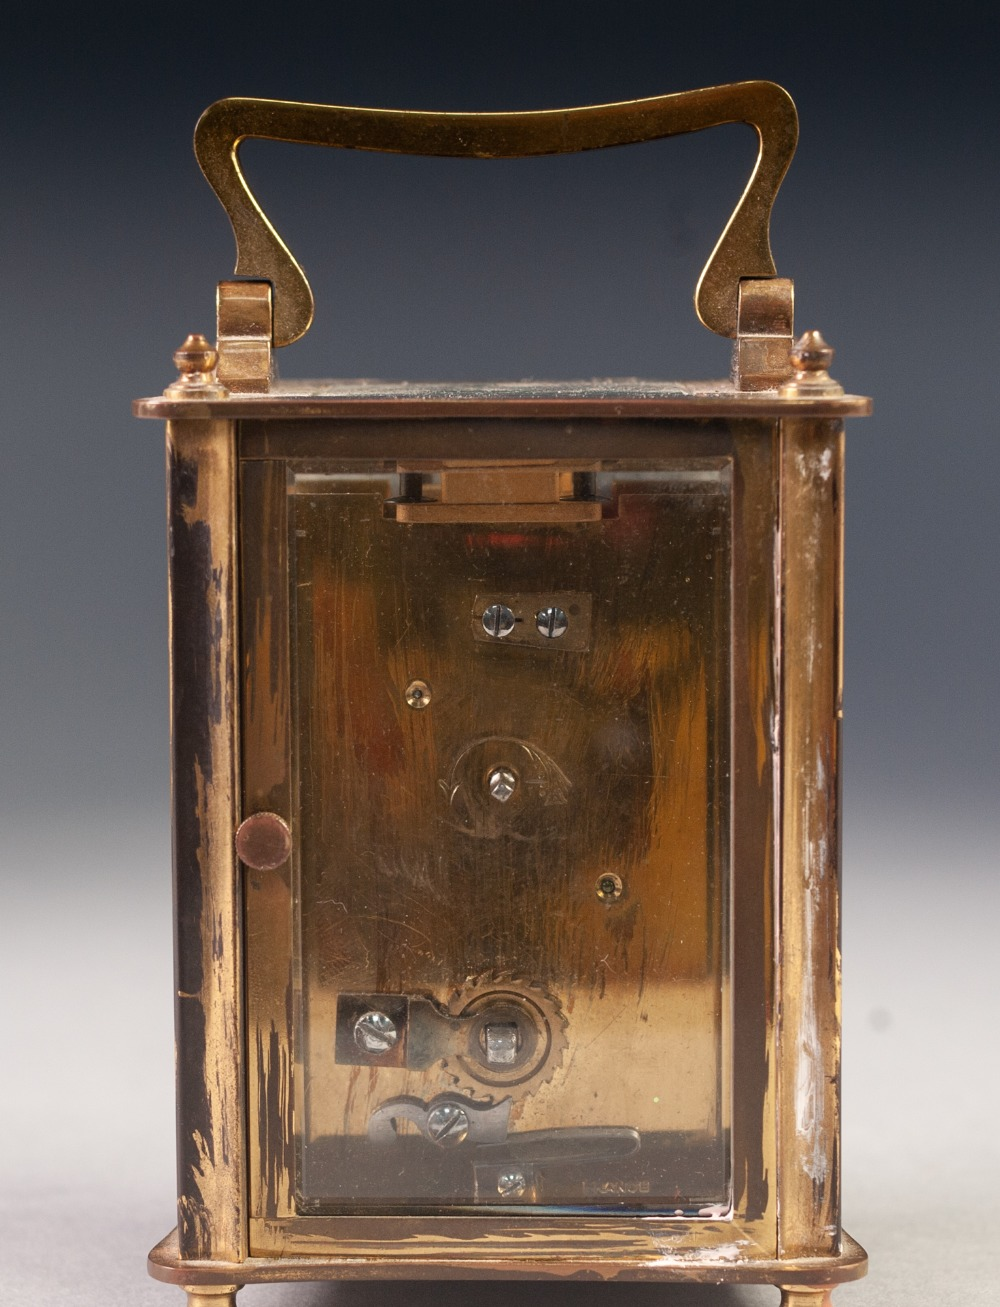 Lot 40 - A MID TWENTIETH CENTURY BRASS CASED CARRIAGE CLOCK of typical form with oblong white dial, black